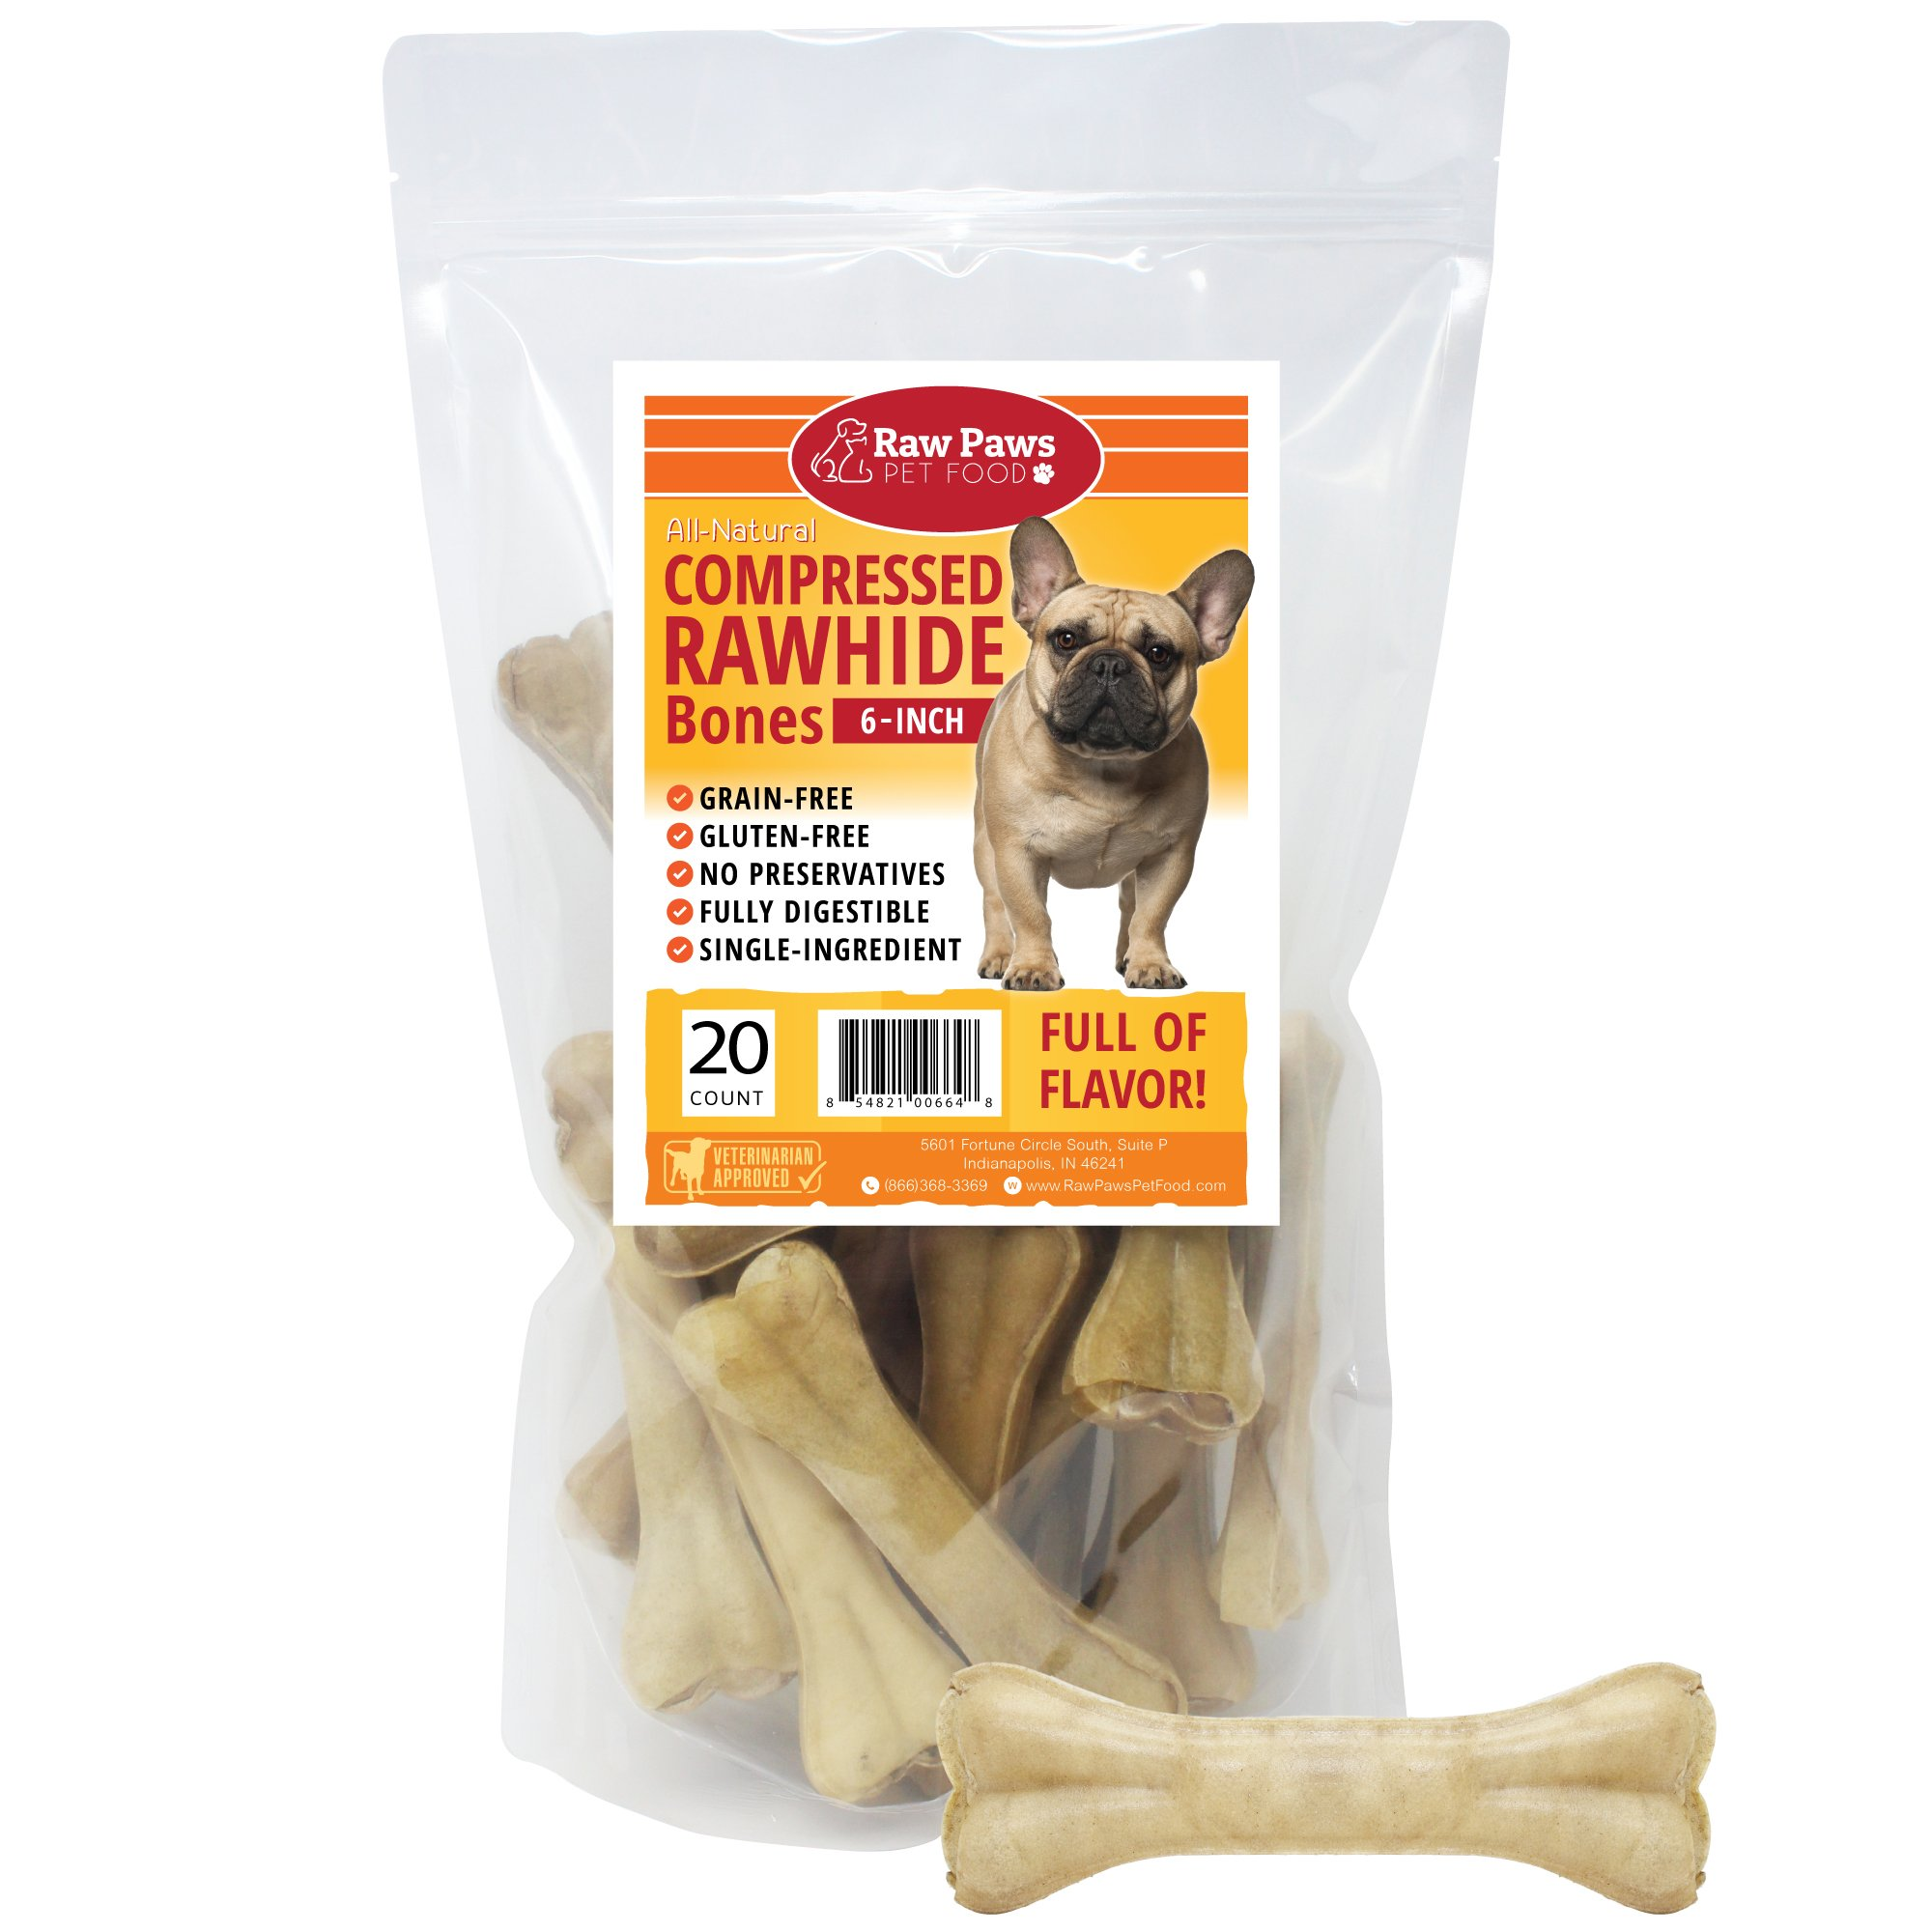 Raw Paws Pet Premium 6-inch Compressed Rawhide Bones for Dogs, 20-Count - Packed in USA - Long Lasting Dog Chews - Natural Pressed Rawhides - Medium Dog Bones - Beef Hide Bones for Aggressive Chewers